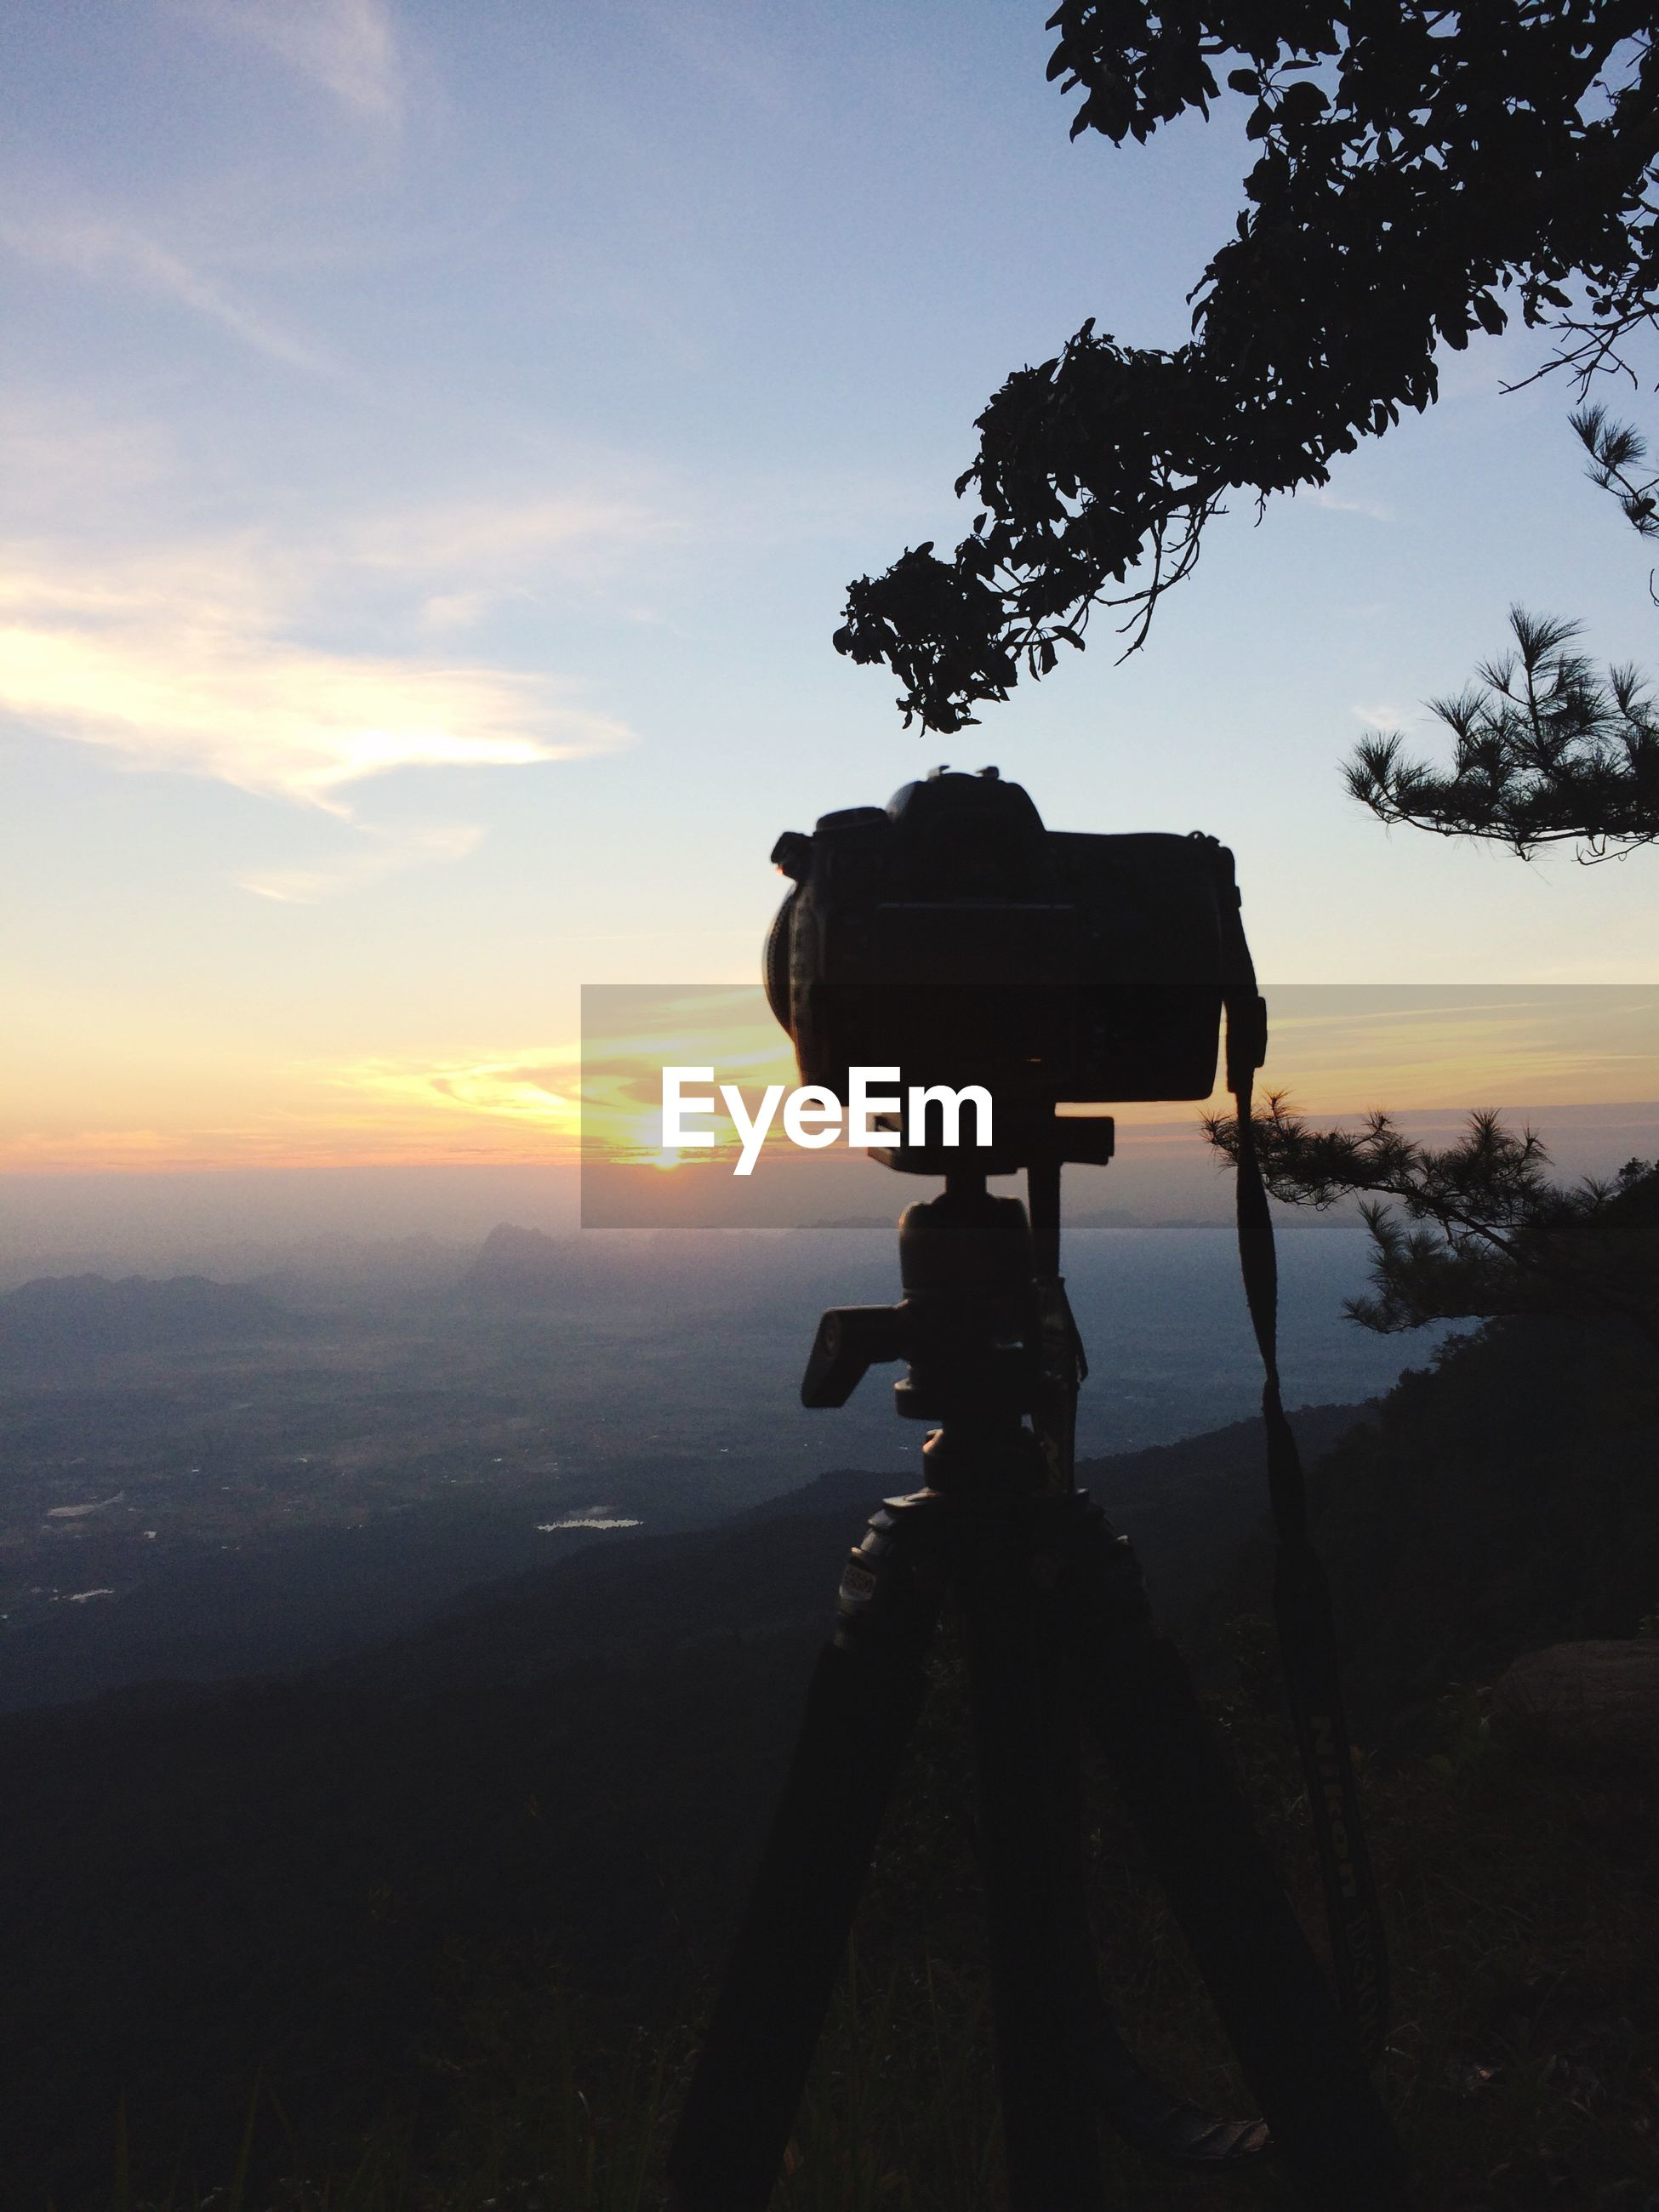 Close-up of dslr camera on tripod against sky during sunset